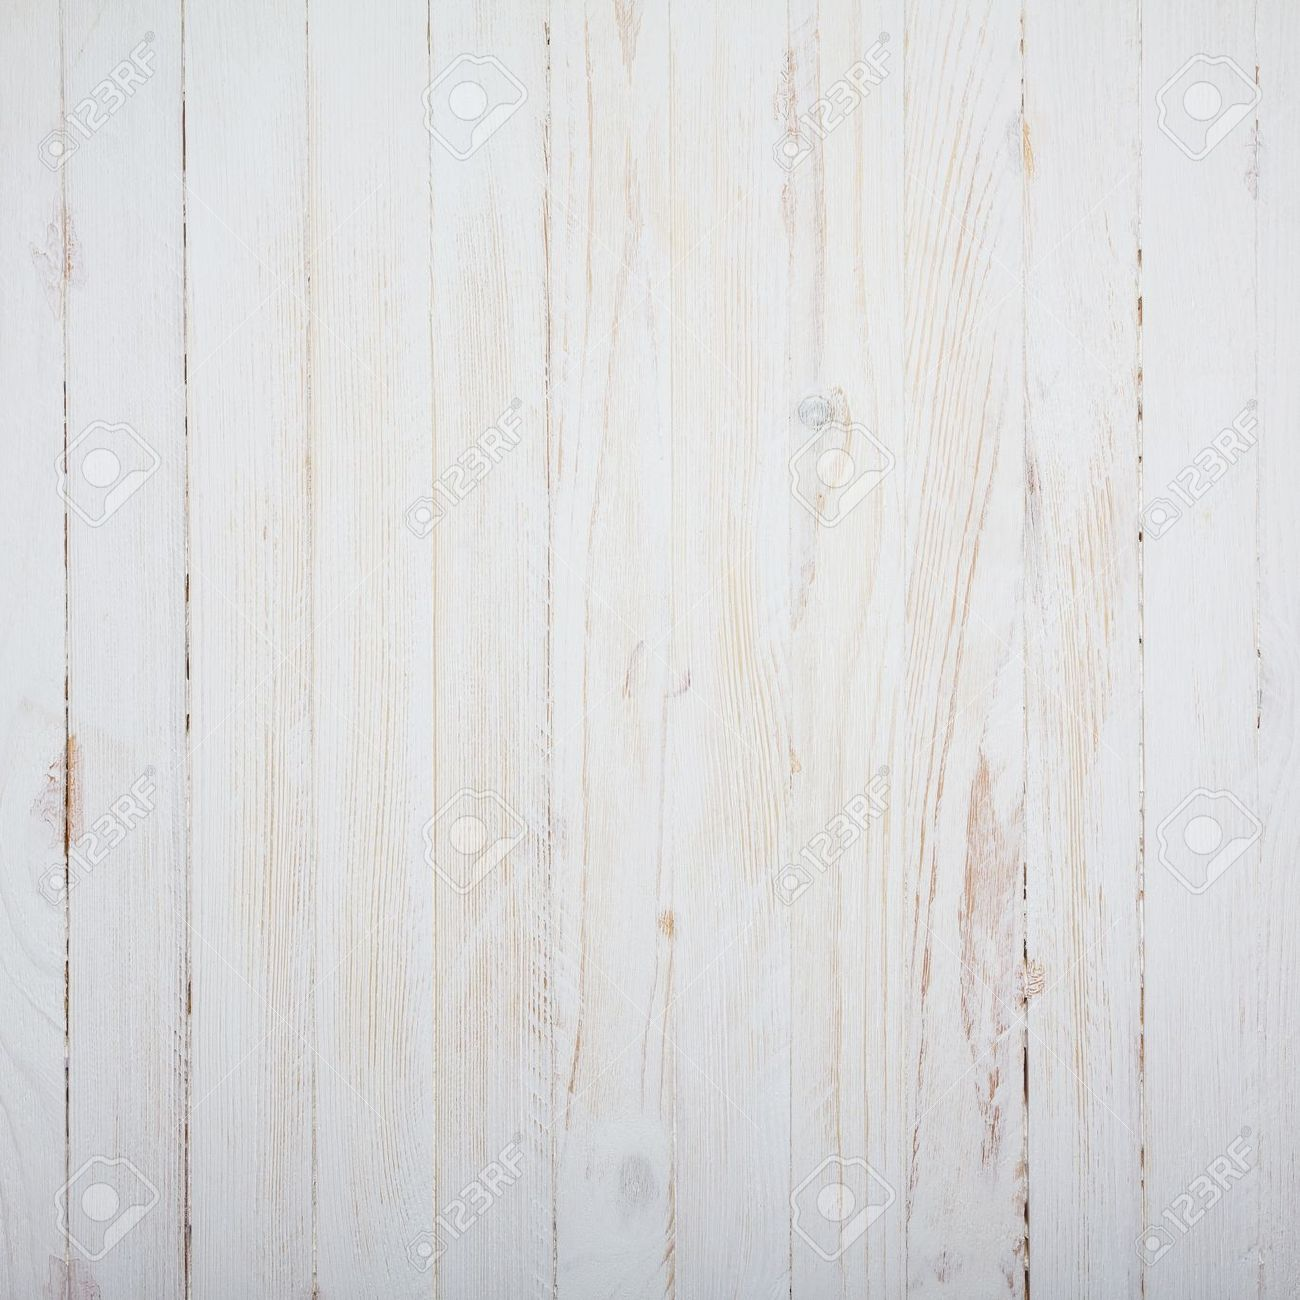 Vintage White Wooden Table Background Top View Stock Photo   21158278